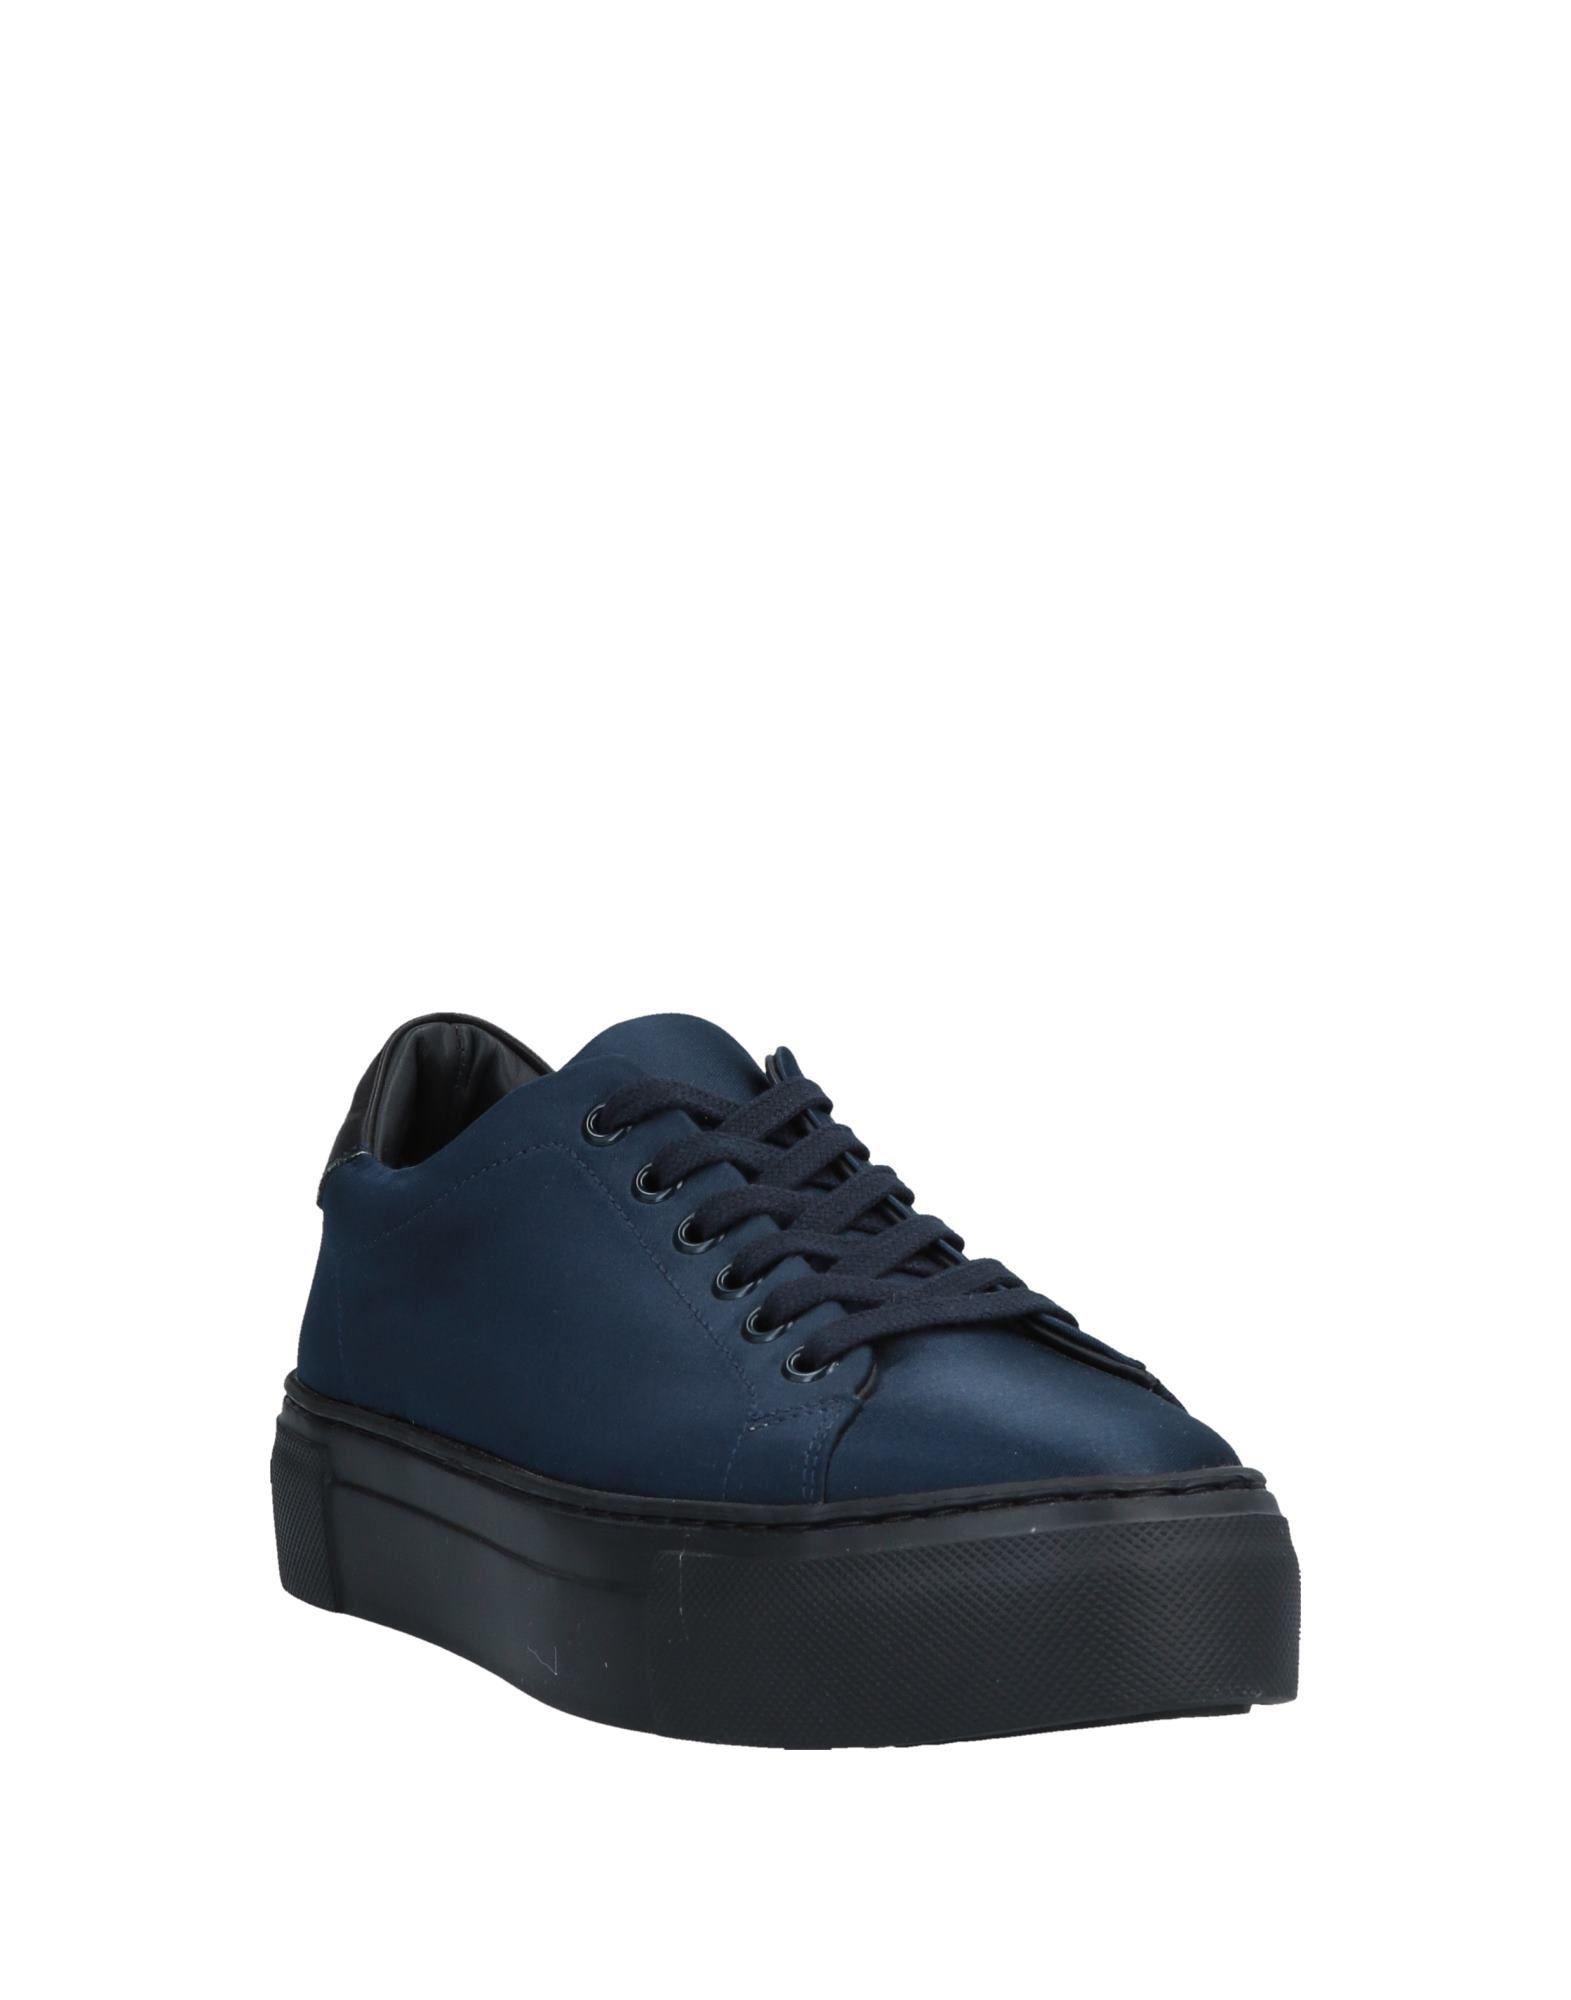 Pinko Satin Low-tops & Sneakers in Dark Blue (Blue)